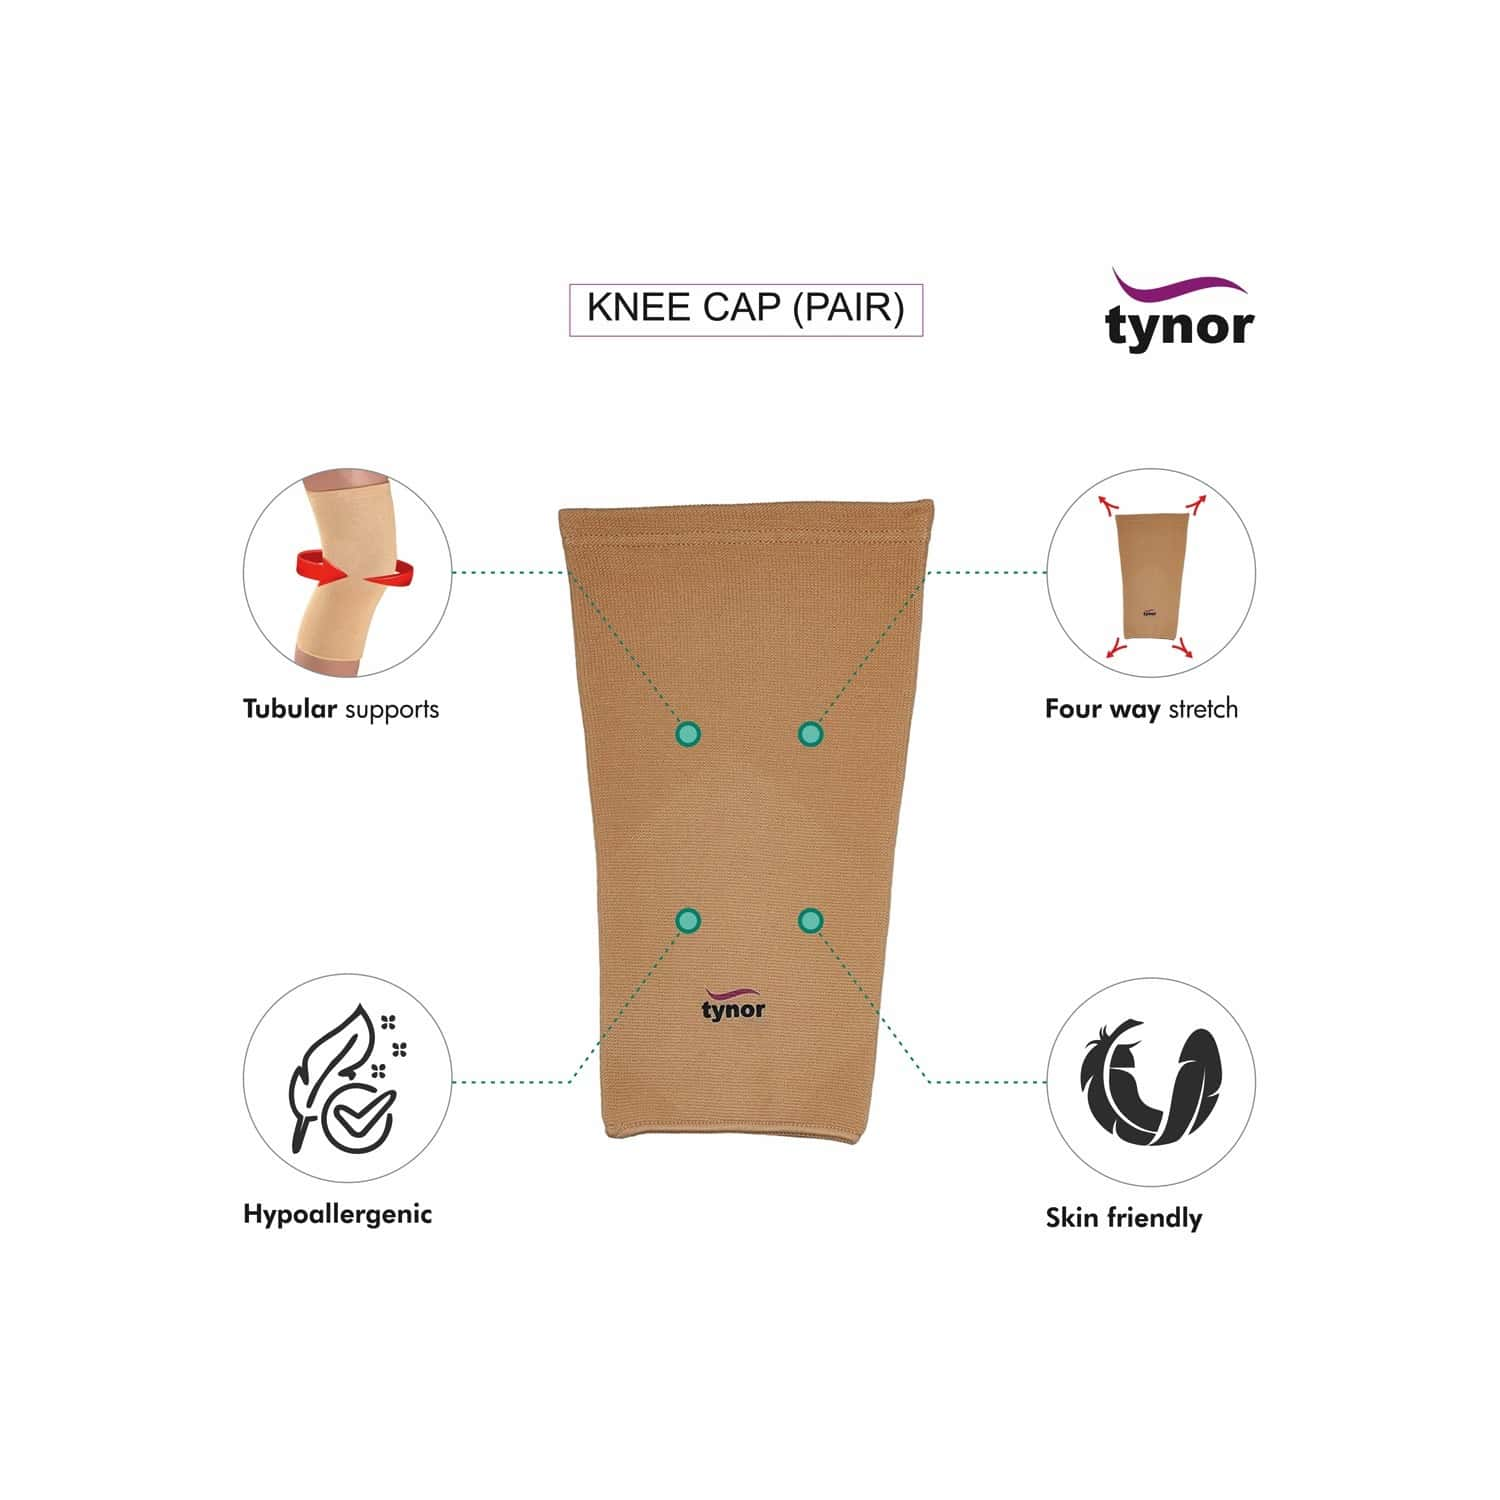 Tynor Knee Cap Pair ( Relieves Pain, Support, Uniform Compression) - Medium